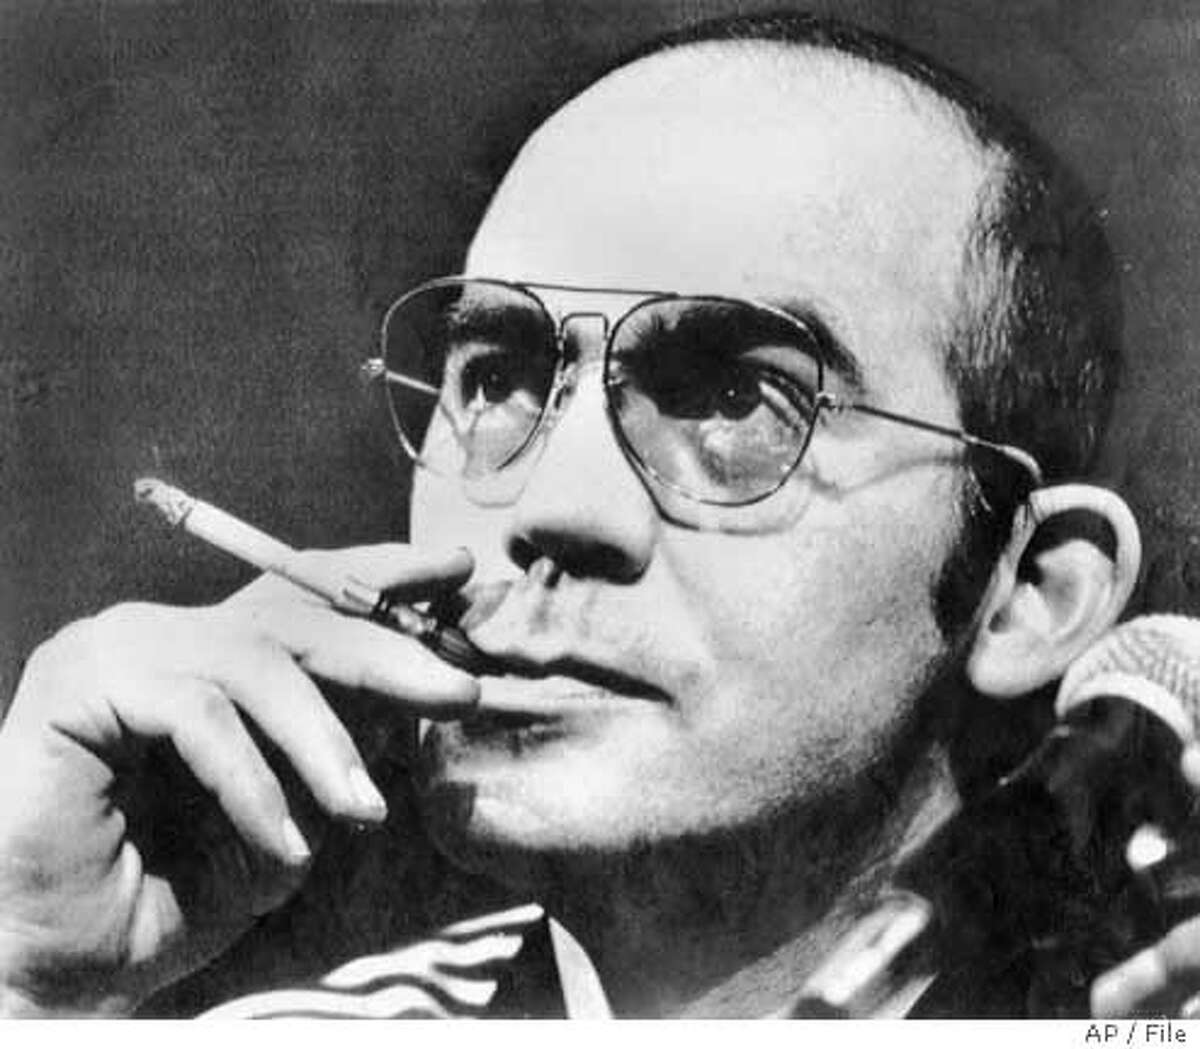 File photo of Hunter S. Thompson from 1977. Associated Press LaserPhoto